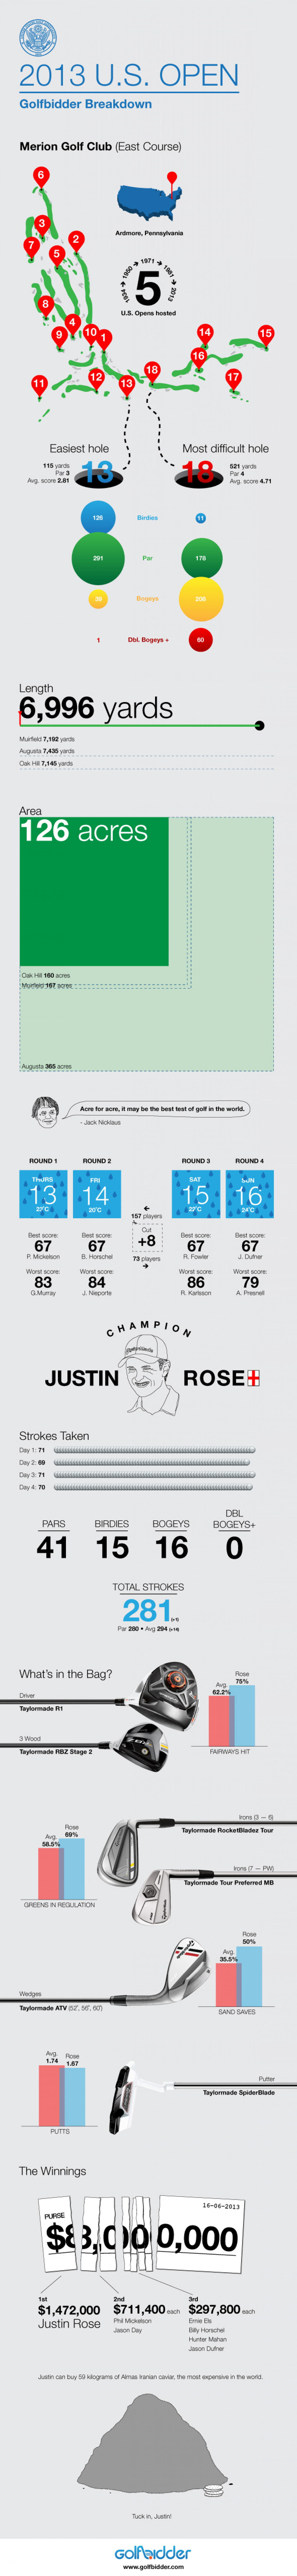 US Open 2013 - Golfbidder Infographic Infographic